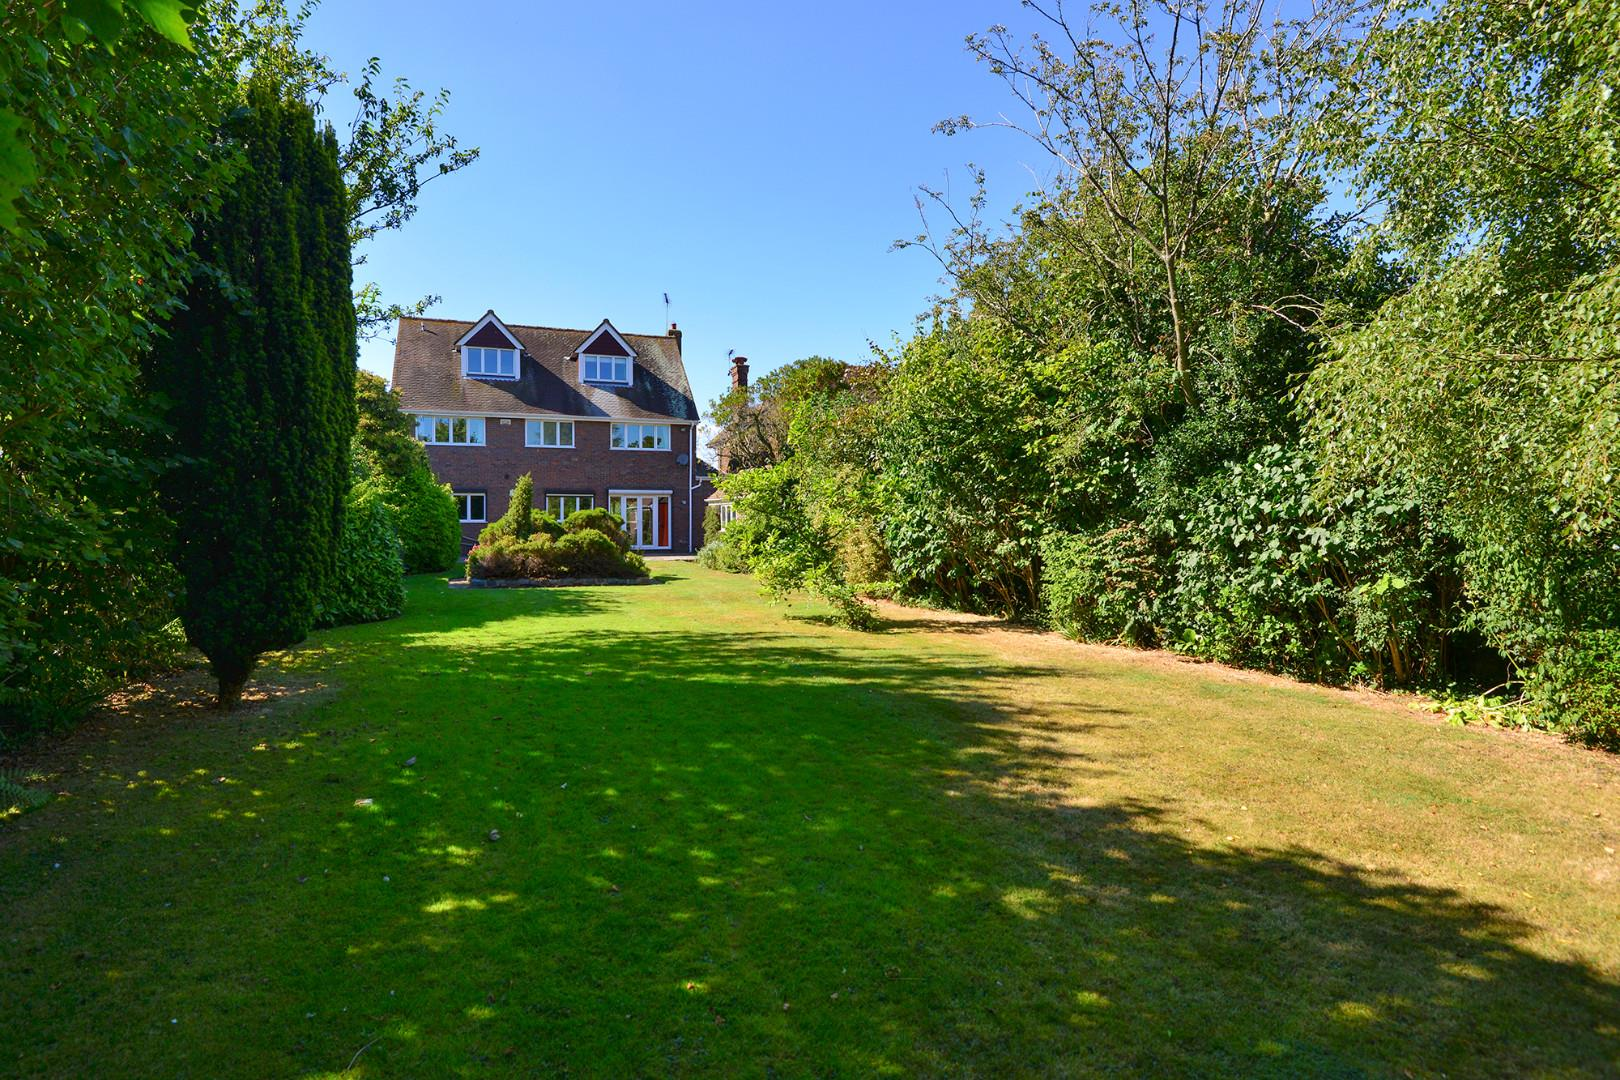 6 Bedroom House For Sale Ashford Road Faversham Me Me13 8xw